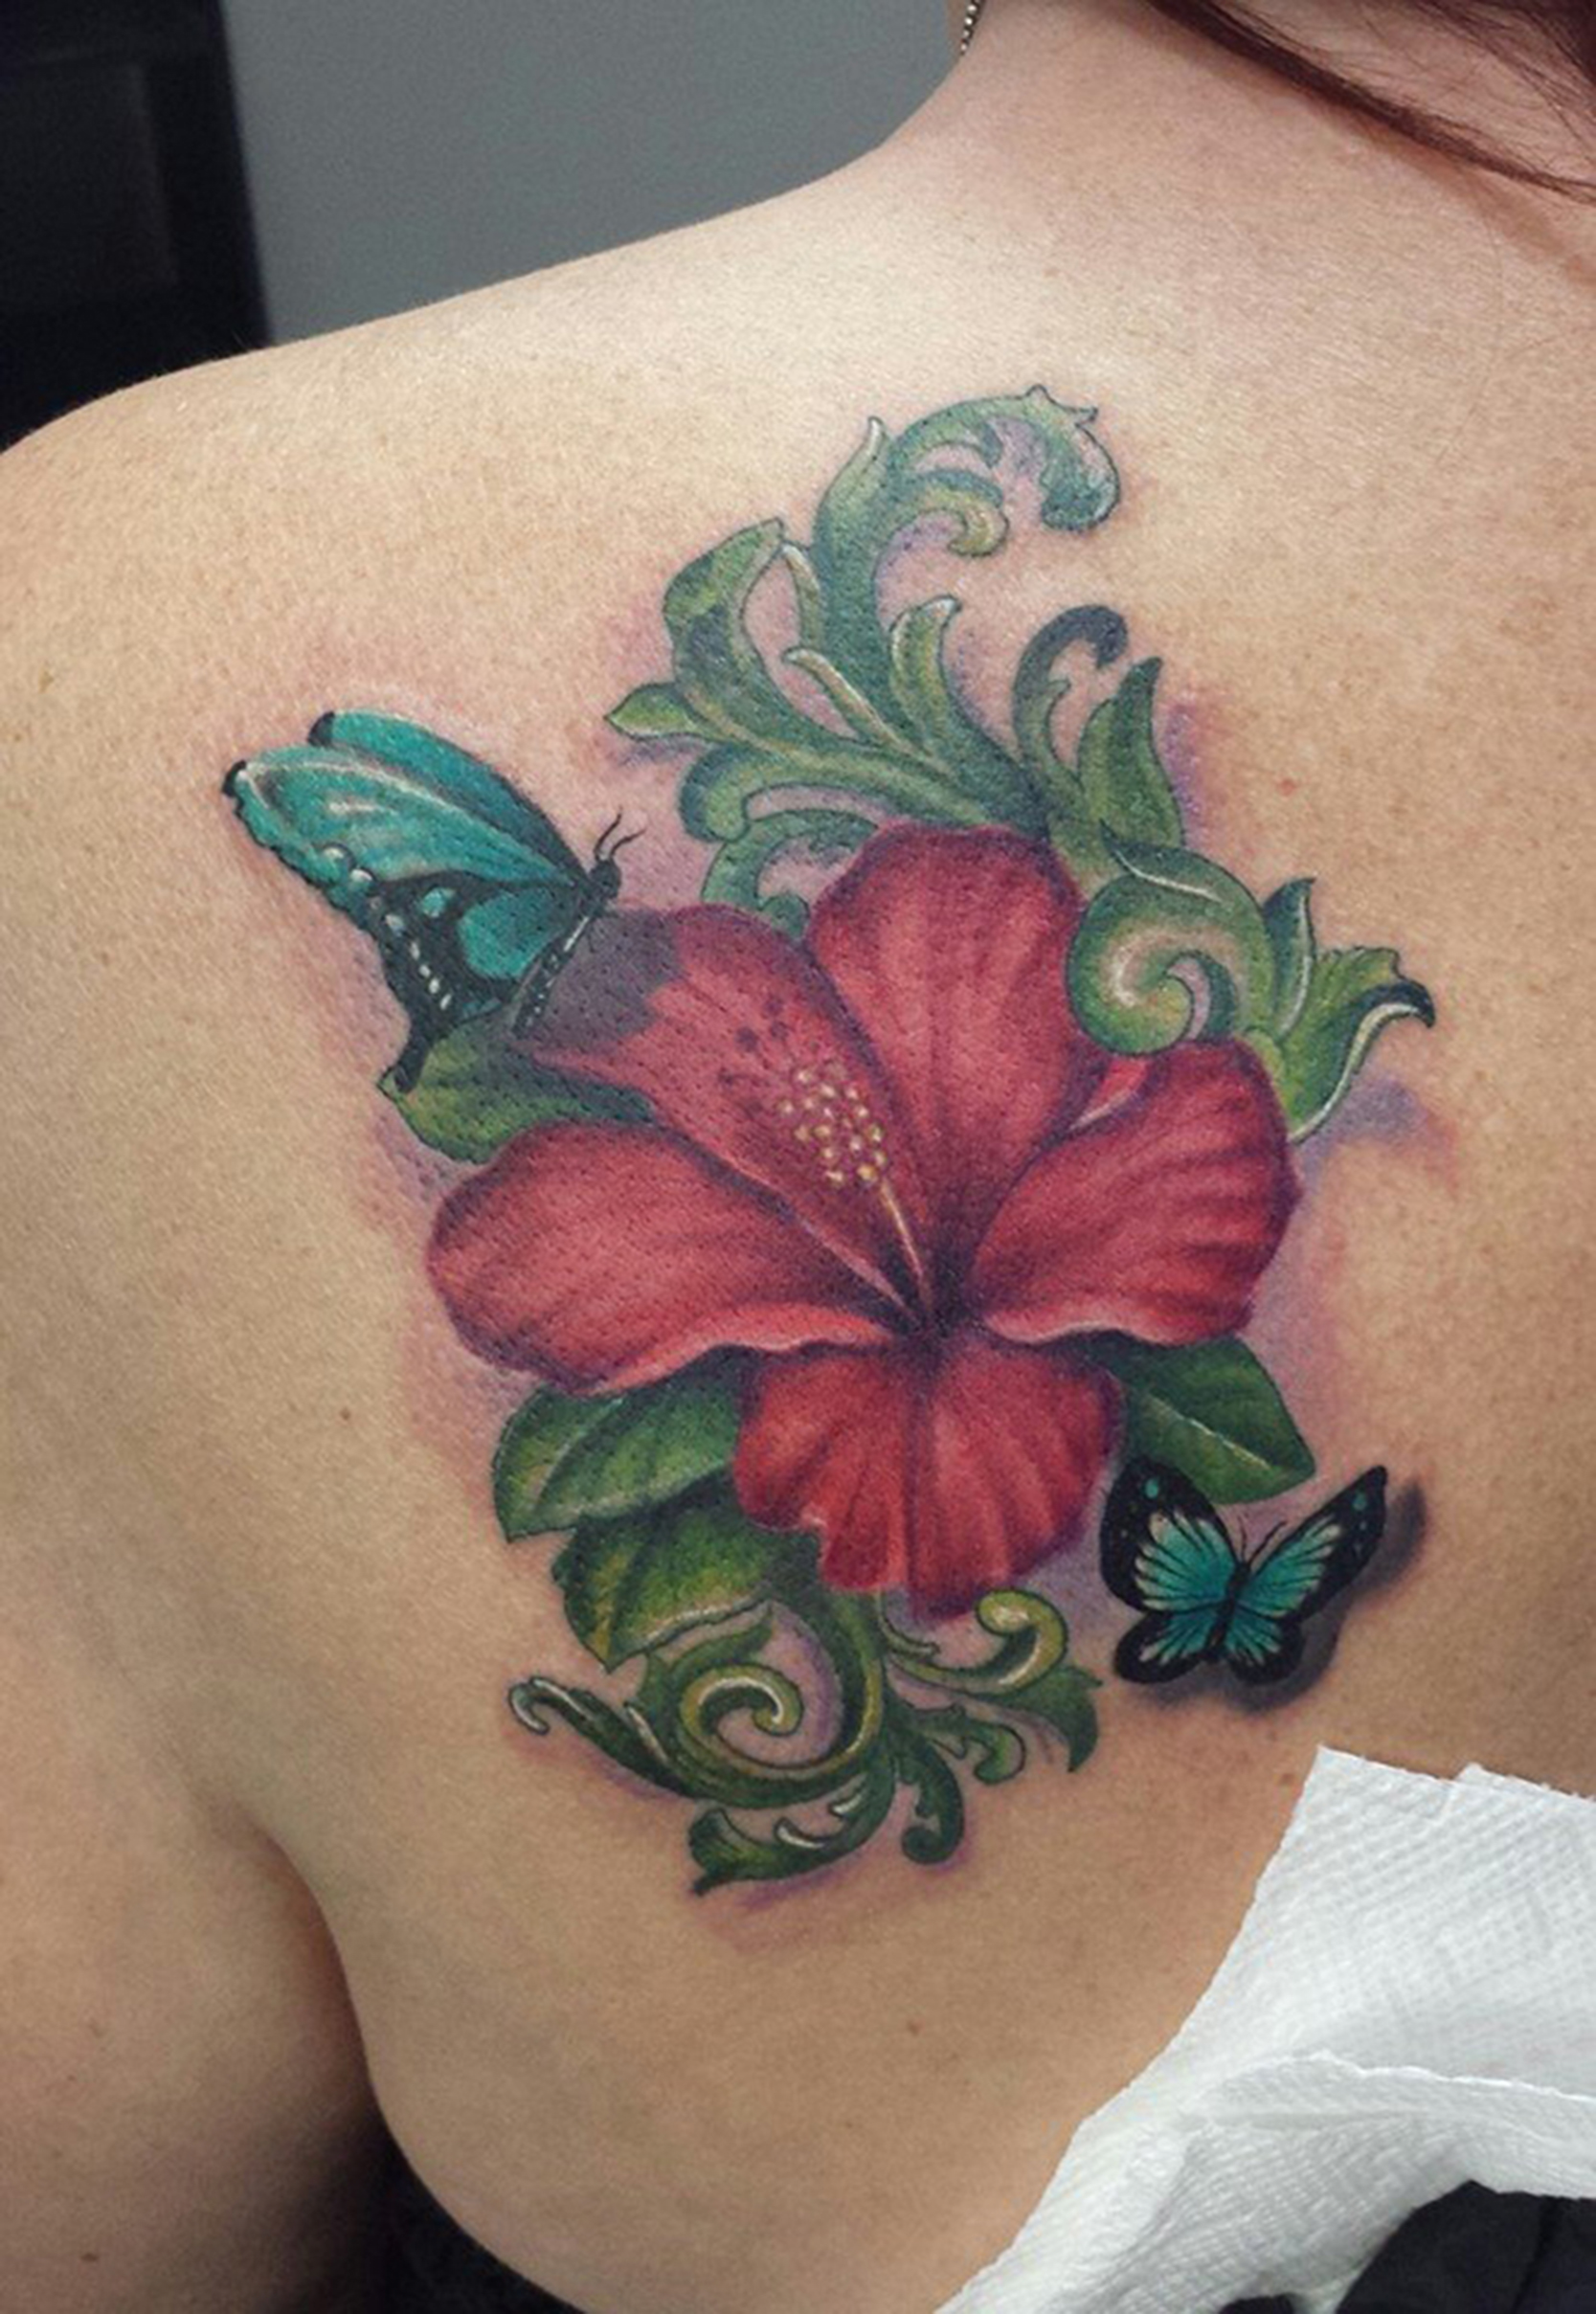 img alt=color_flower_tattoo_dallas_tattooartist_gold_dust_tattoos_char.jpg